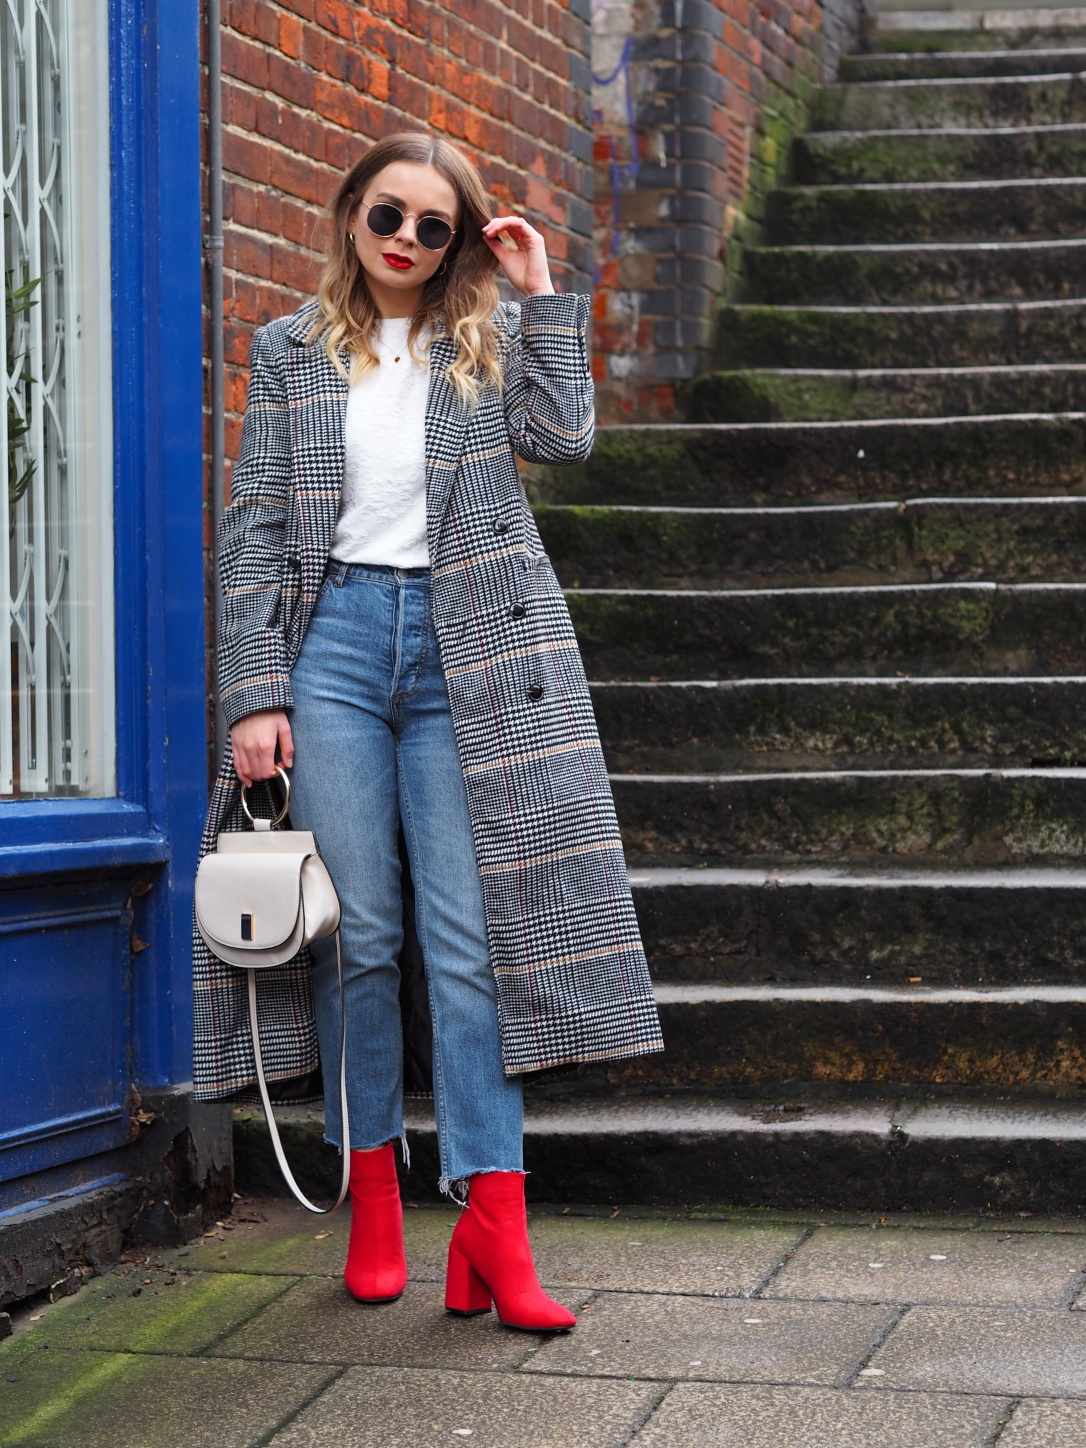 How to style red boots